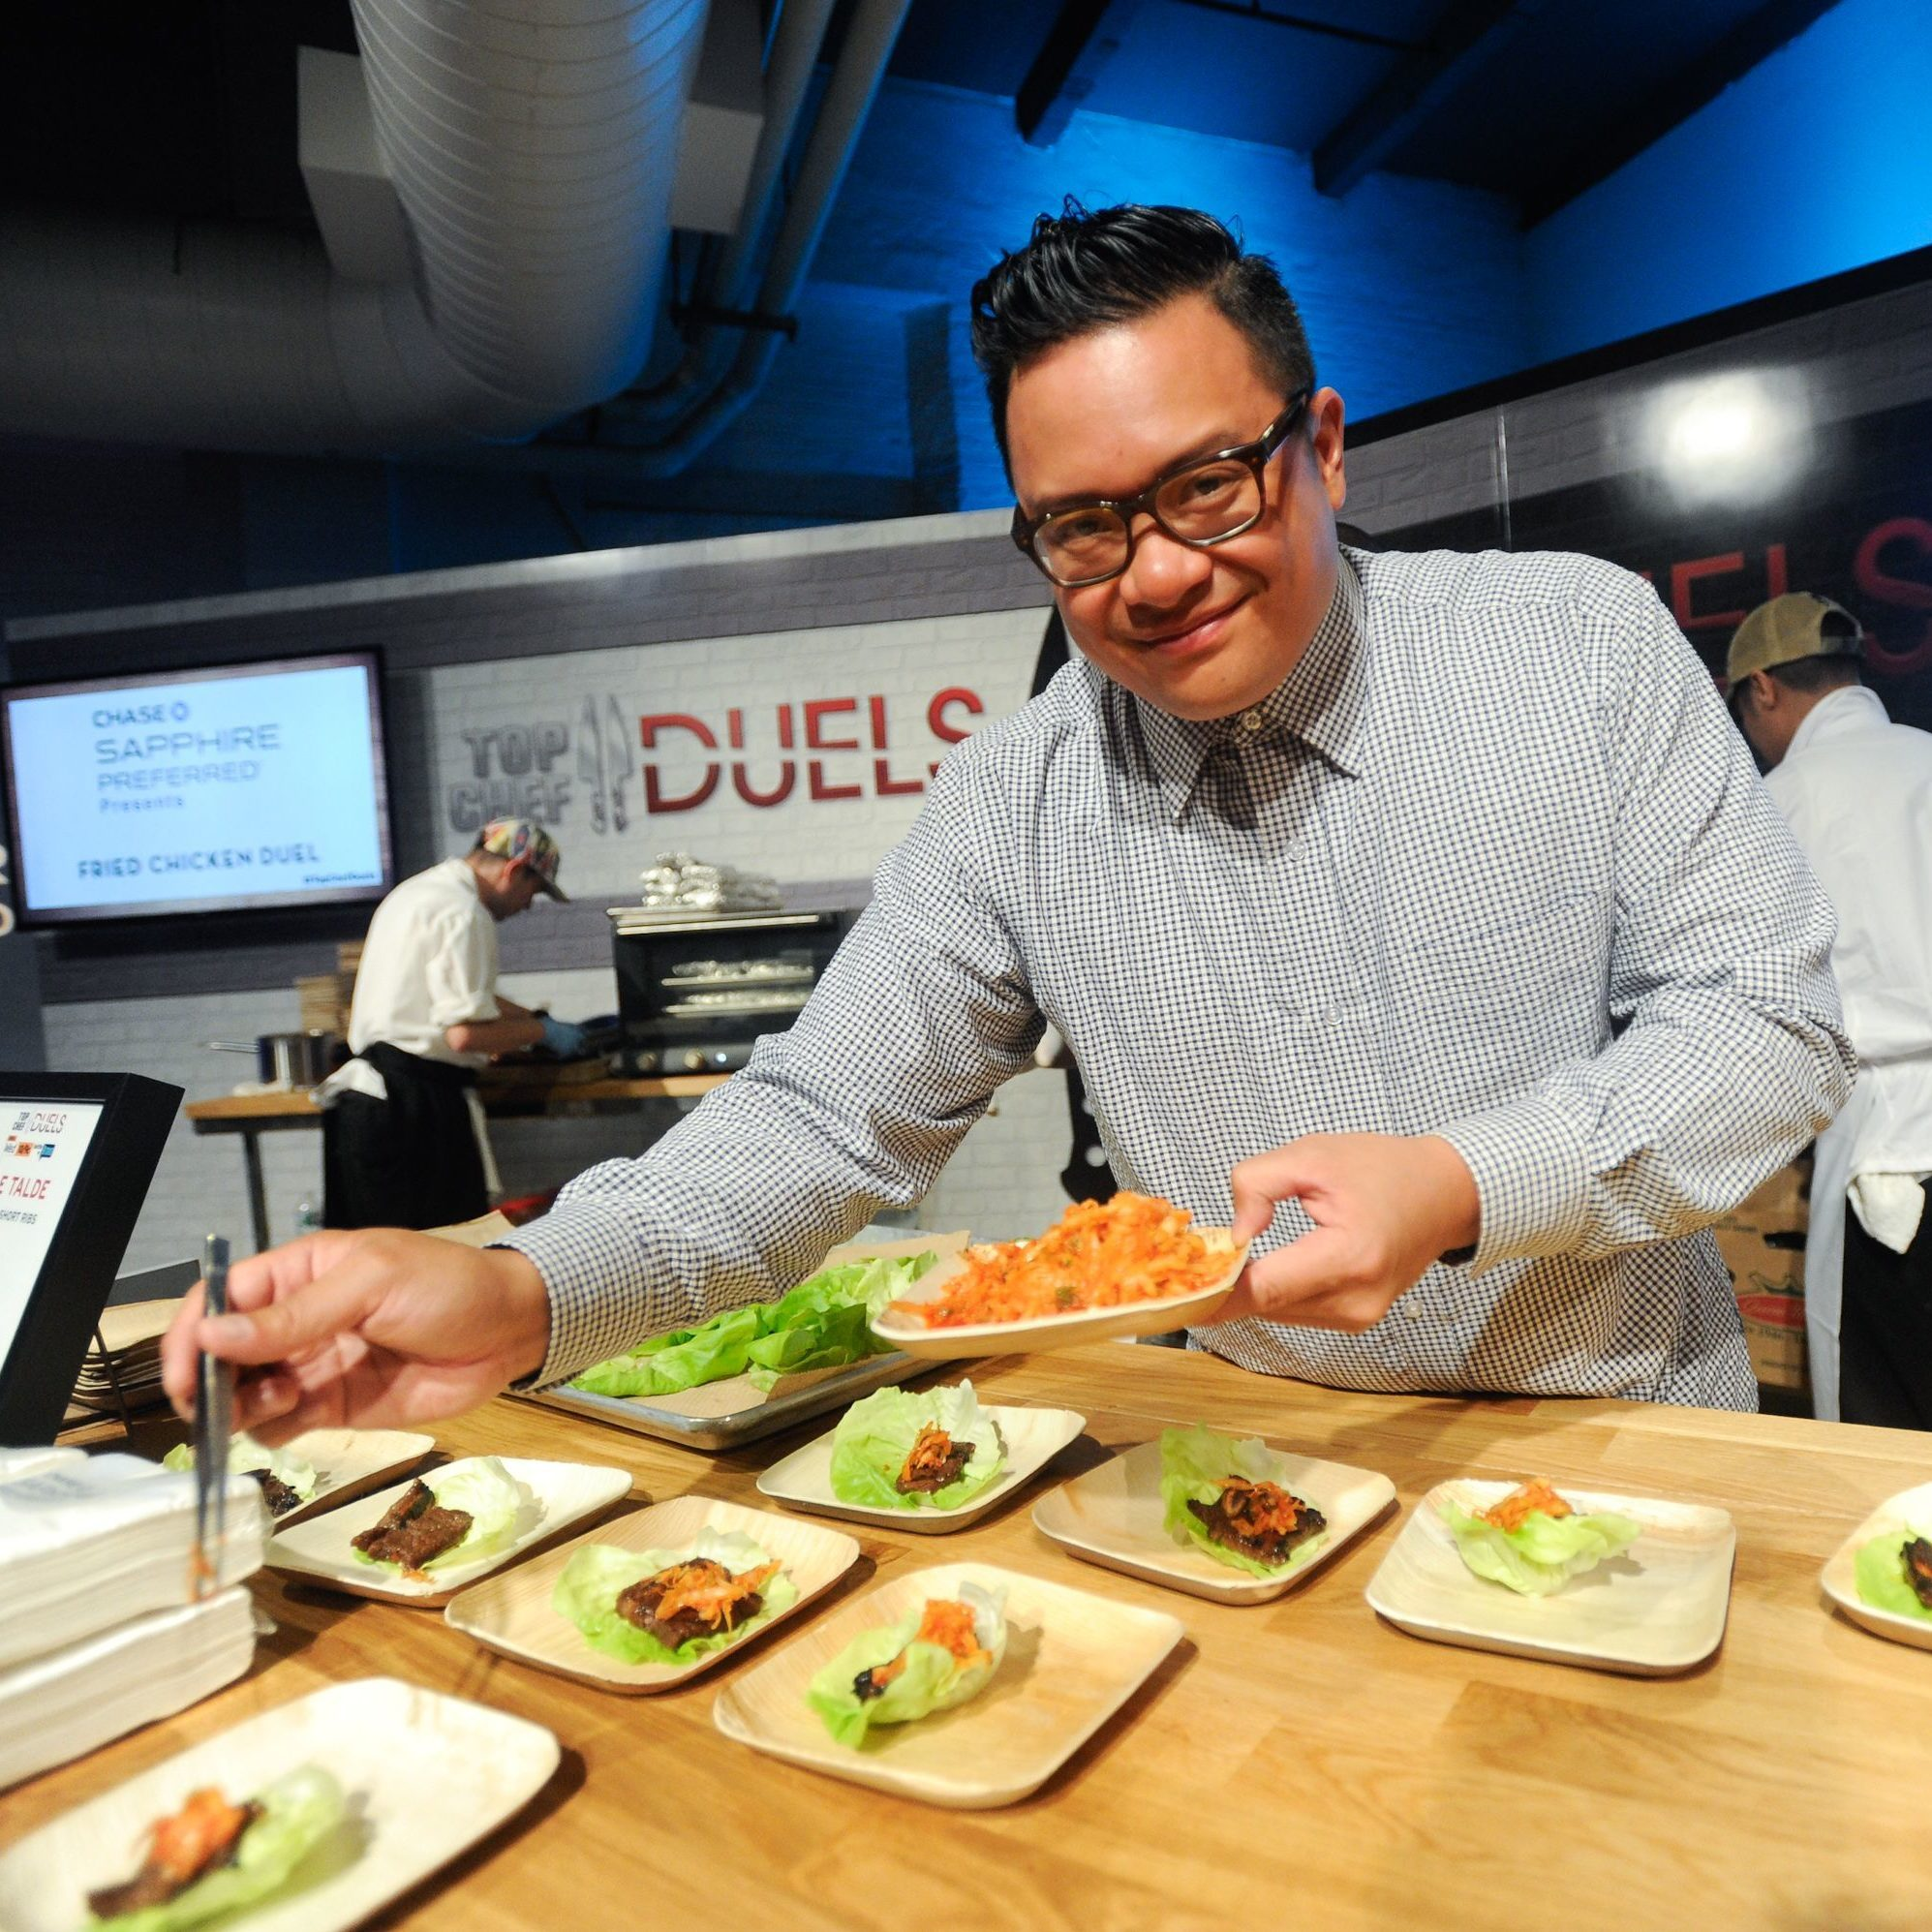 """Mandatory Credit: Photo by Evan Agostini/Invision/AP/Shutterstock (9079439f) Chef Dale Talde prepares a Korean short ribs dish at """"Top Chef Duels"""" Premiere Tasting Event, hosted by Chase Sapphire Preferred and Bravo, at the Altman Building, on in New York """"Top Chef Duels"""" Premiere Tasting Event, New York, USA"""